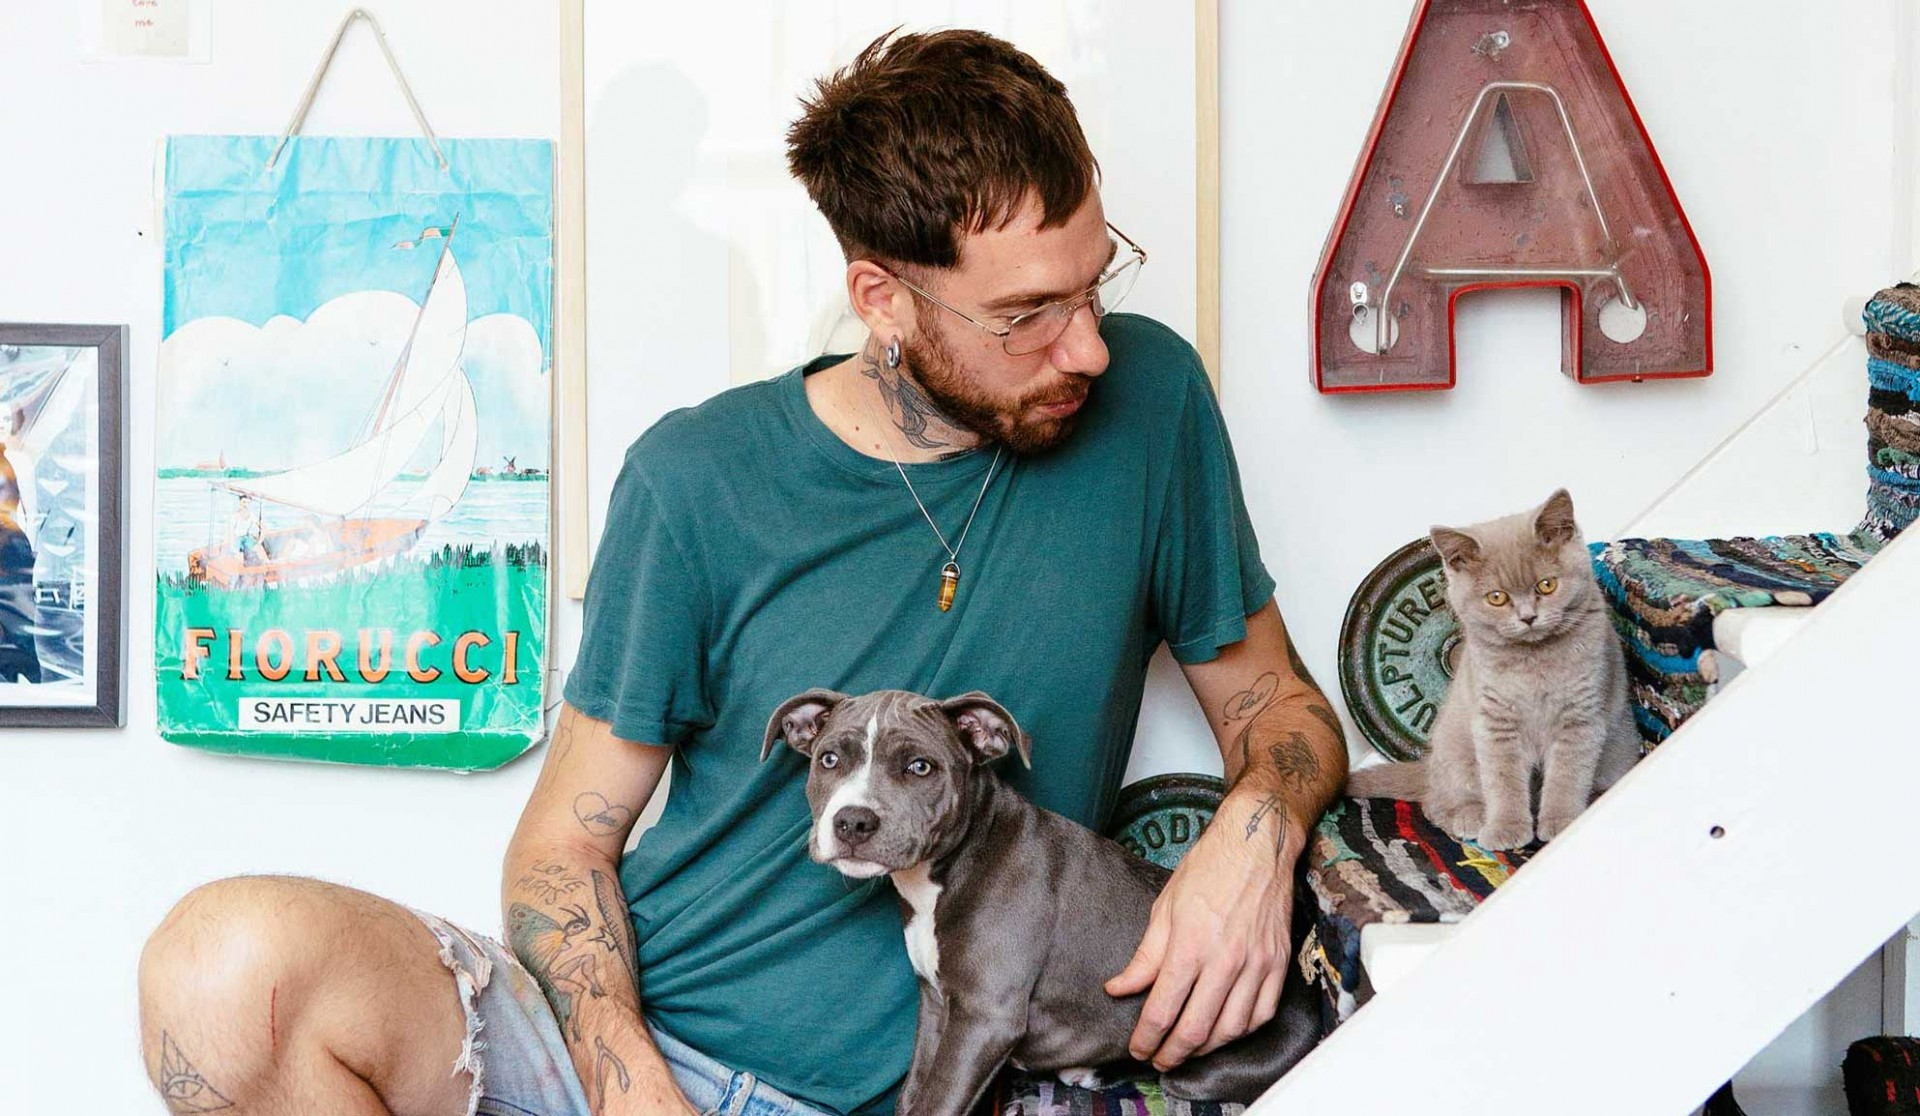 Alex Noble at home with Ash the dog and kitten Spuki Joi. Photo: Anna Batchelor for annaandtam.com